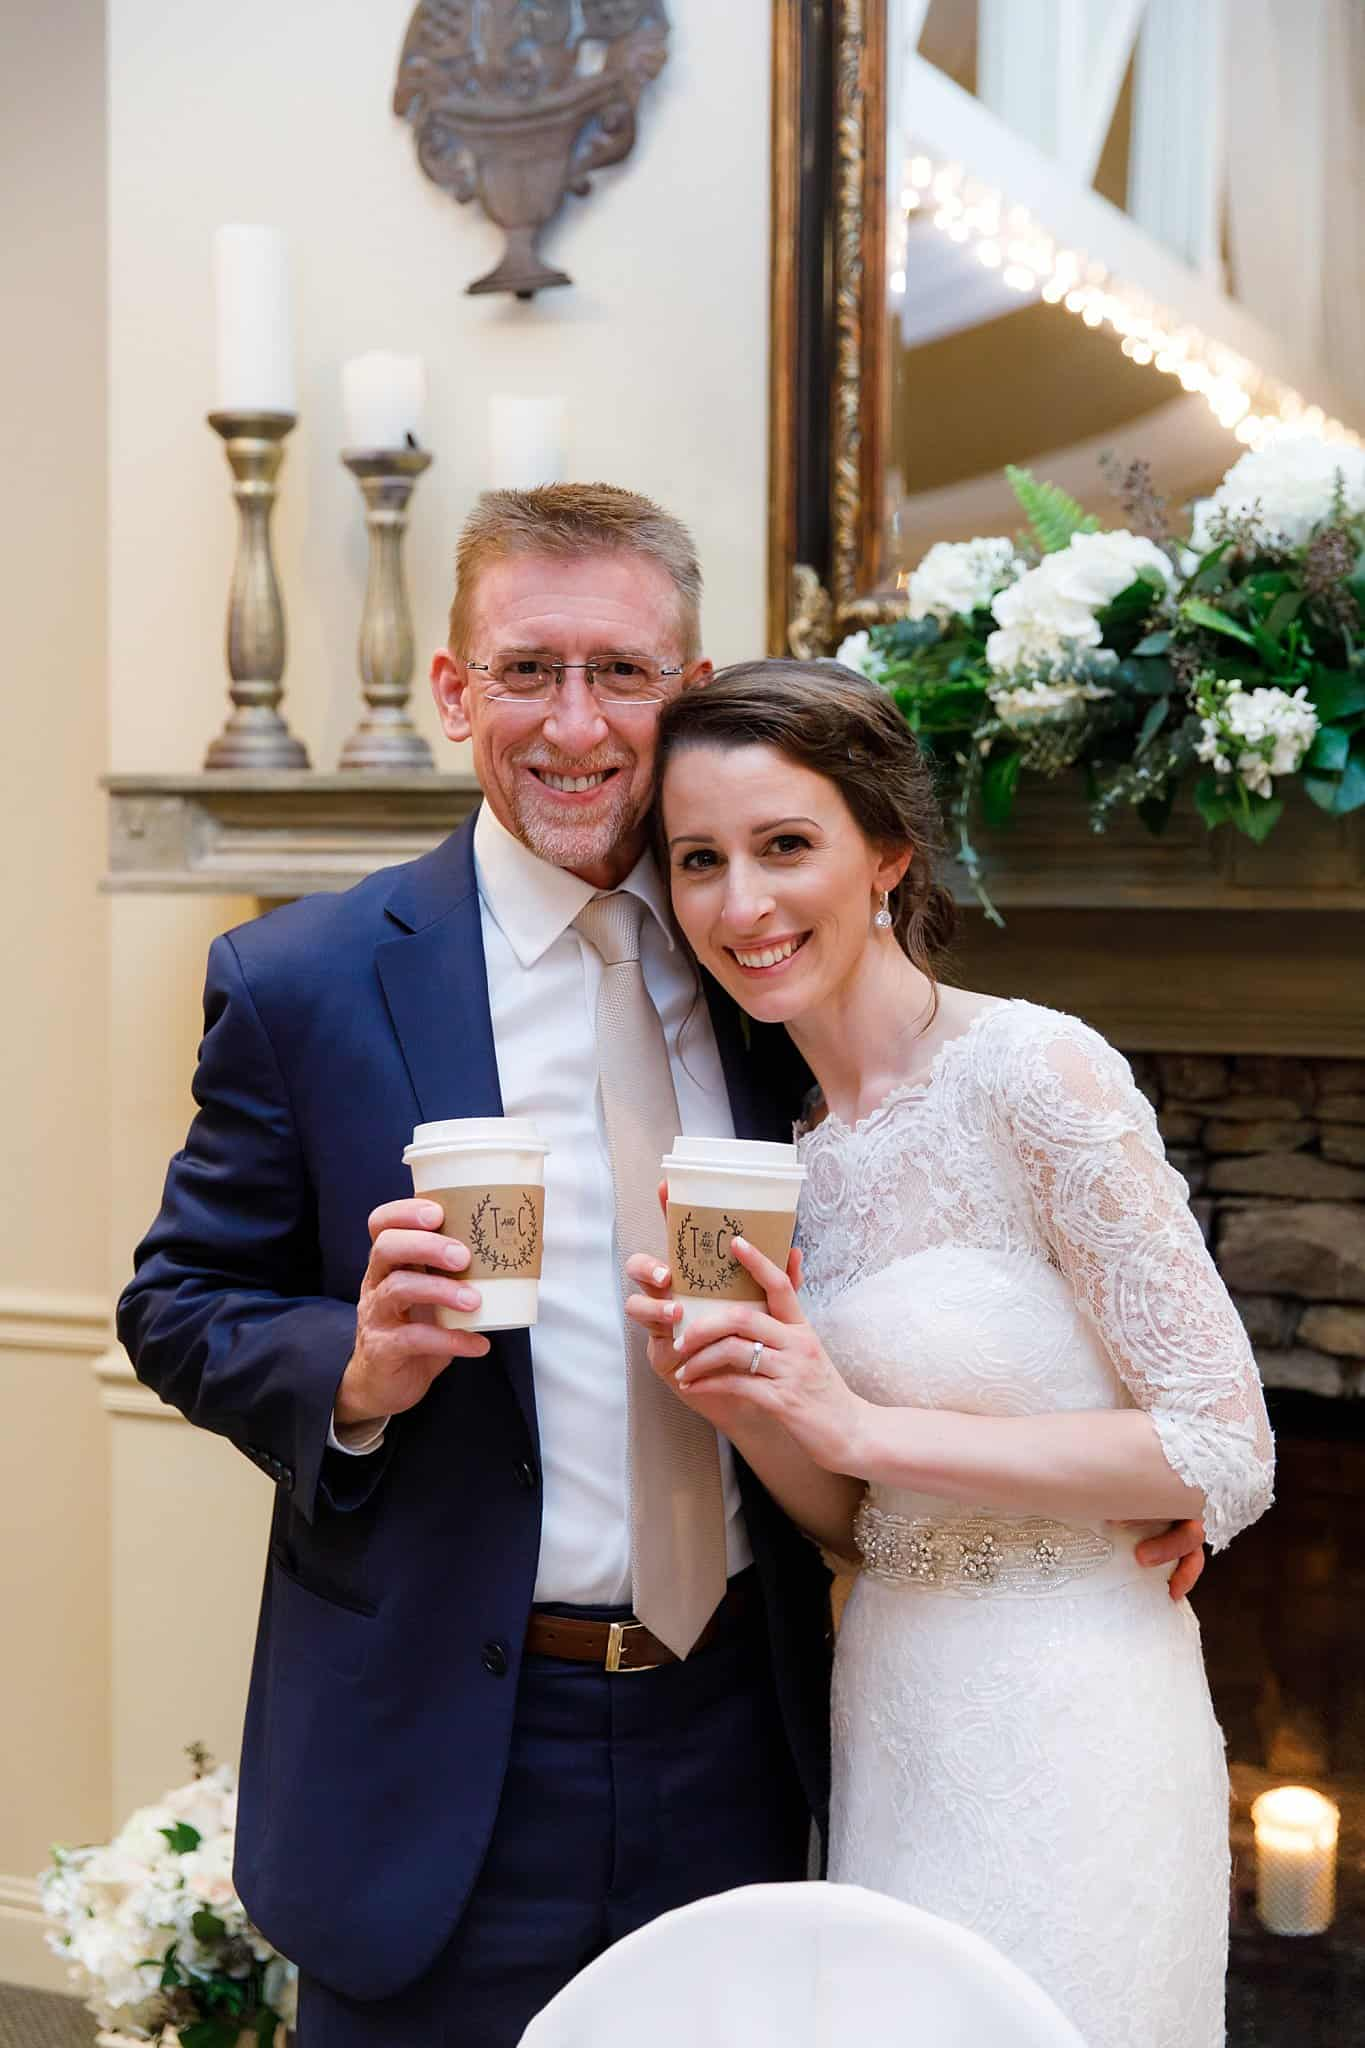 Bride and Groom with personalized coffee cups